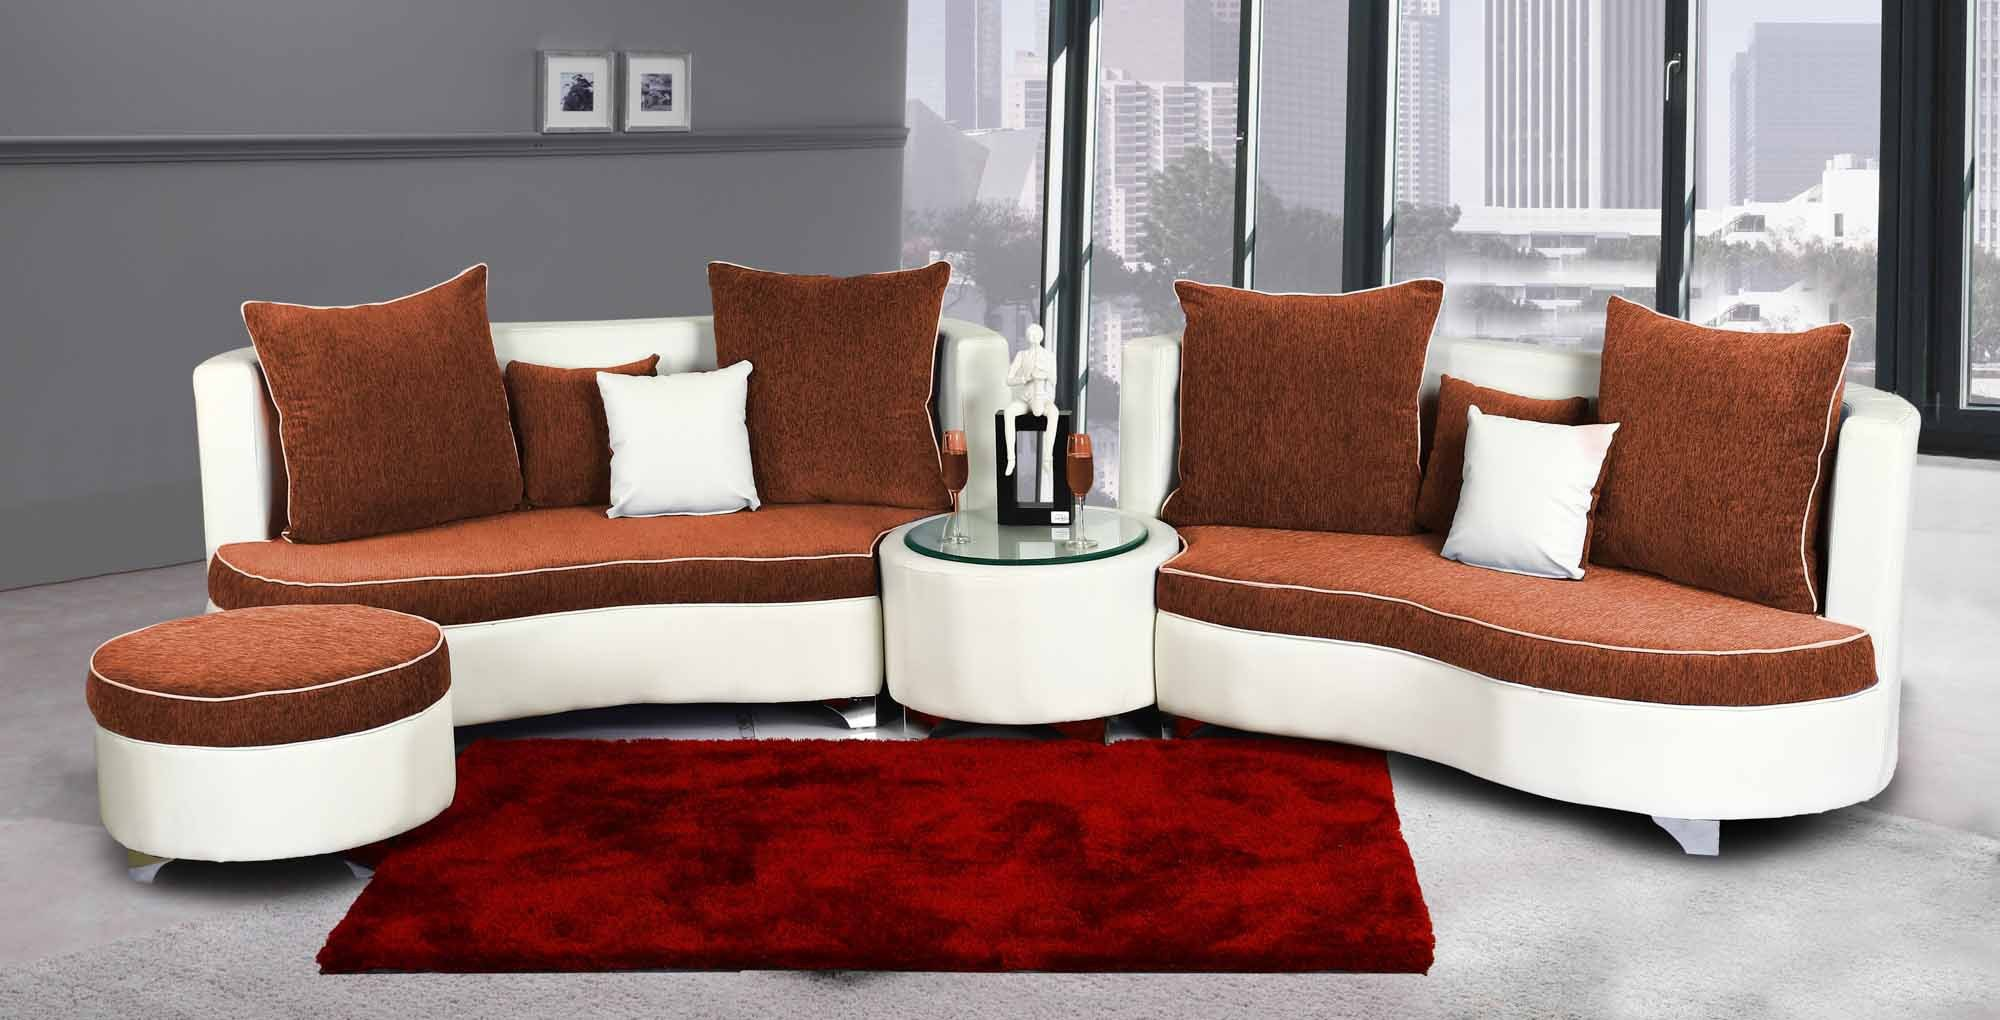 View Home City Leatherette 7 Seater Sectional(Finish Color - White & Russet) Furniture (Home City)